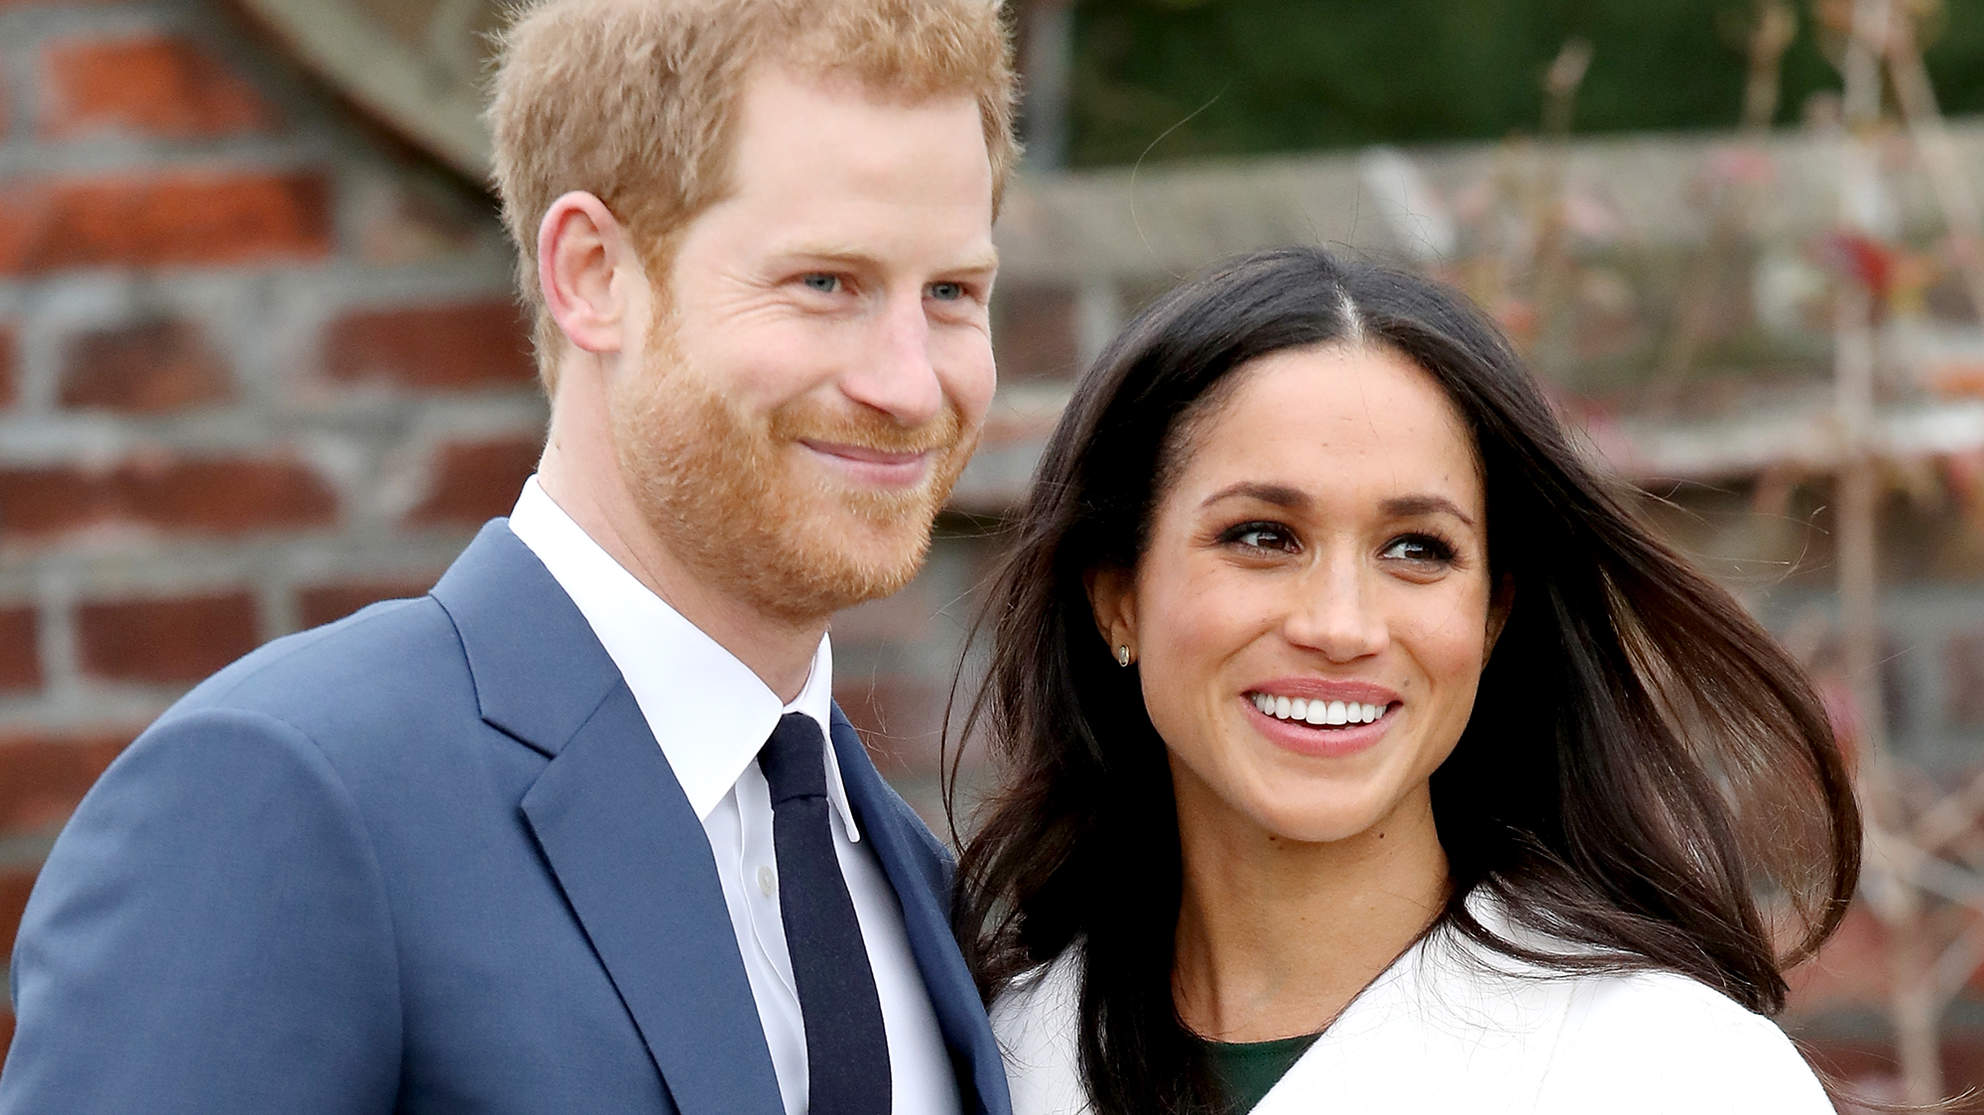 Prince Harry and Meghan Markle Will Have a Short Engagement for This Touching Reason